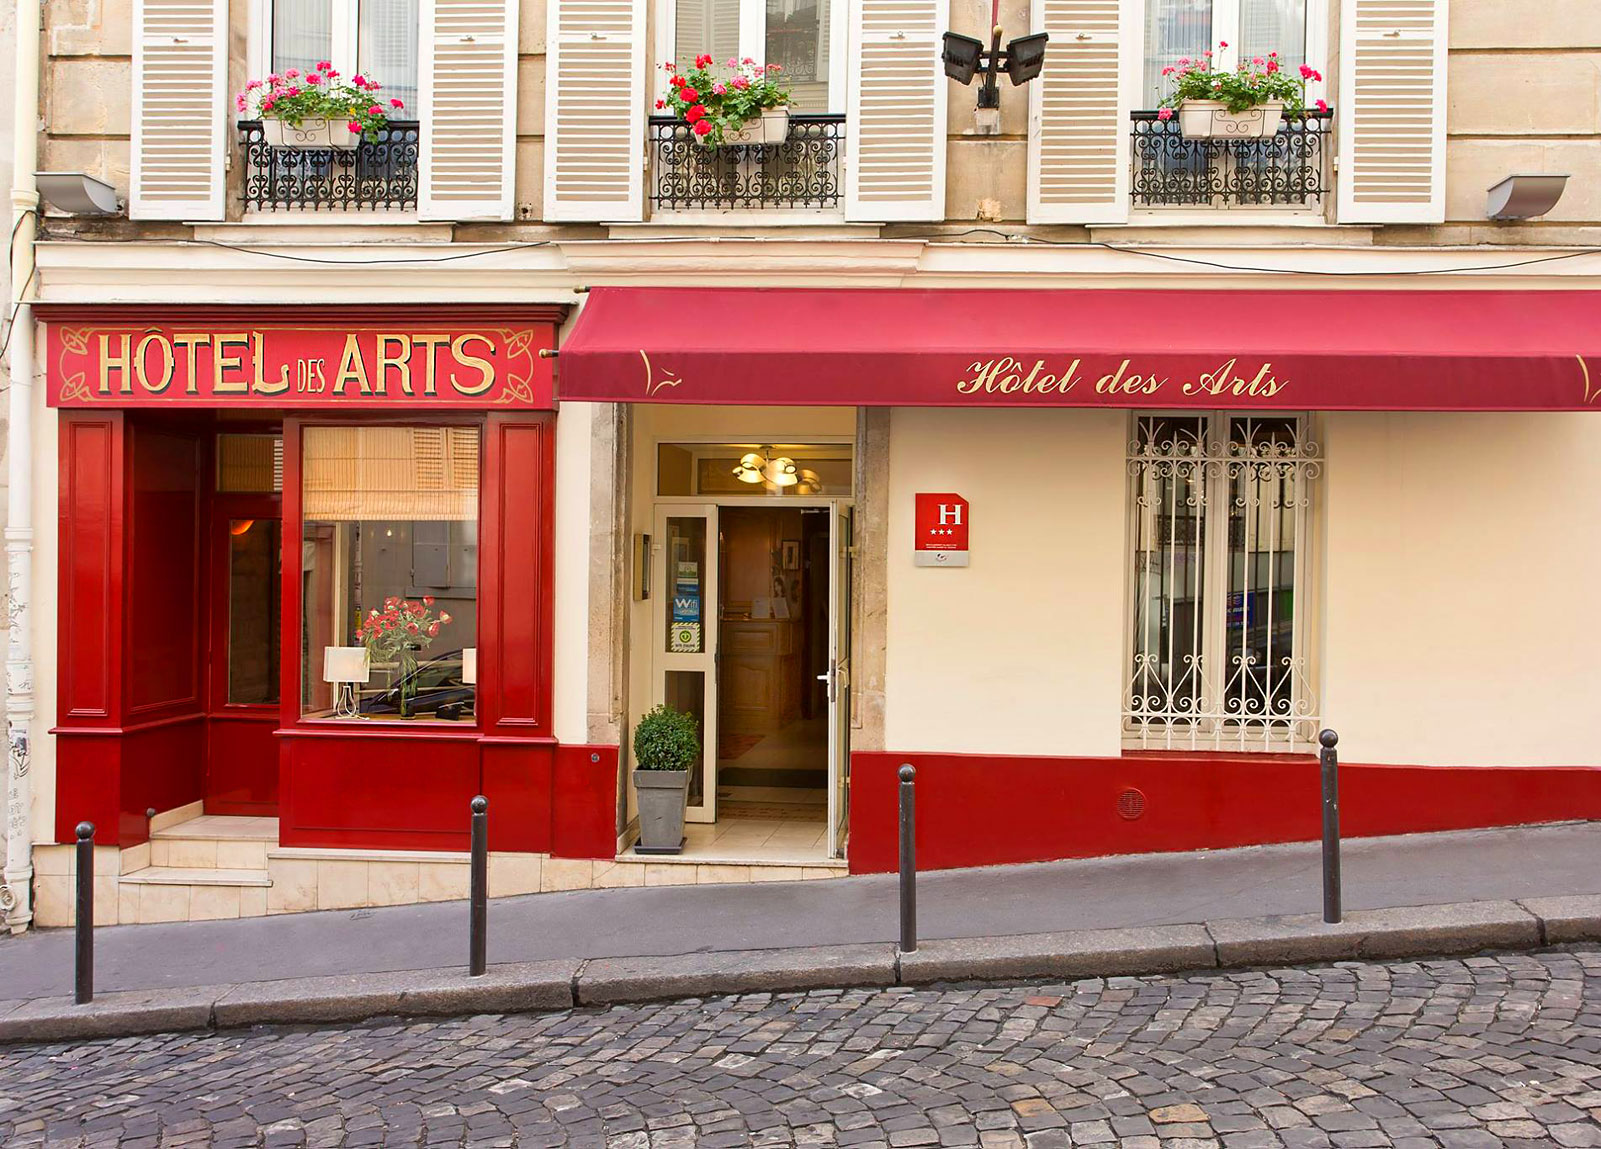 Paris Cheap Hotels - Motel in Paris - Cheap Accommodation in Paris